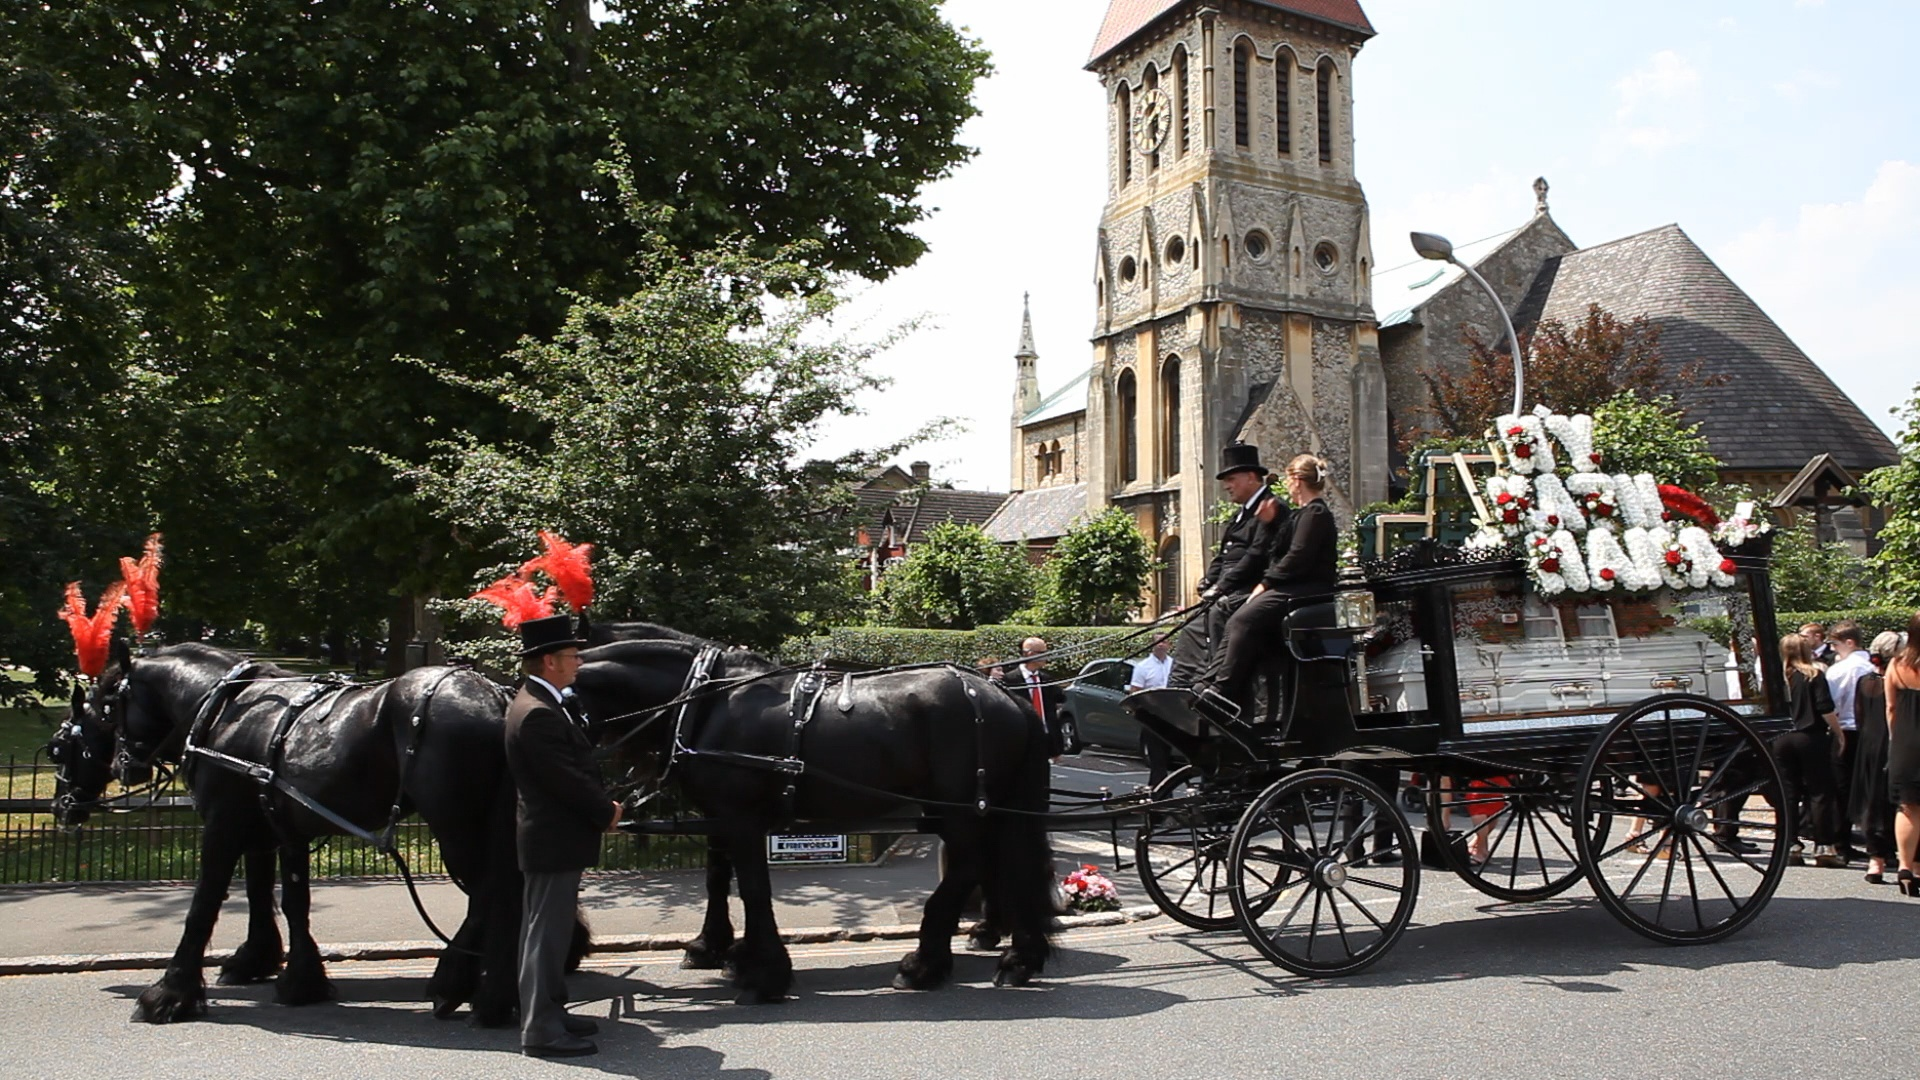 Horse drawn Funeral Cortege Procession in Northampton